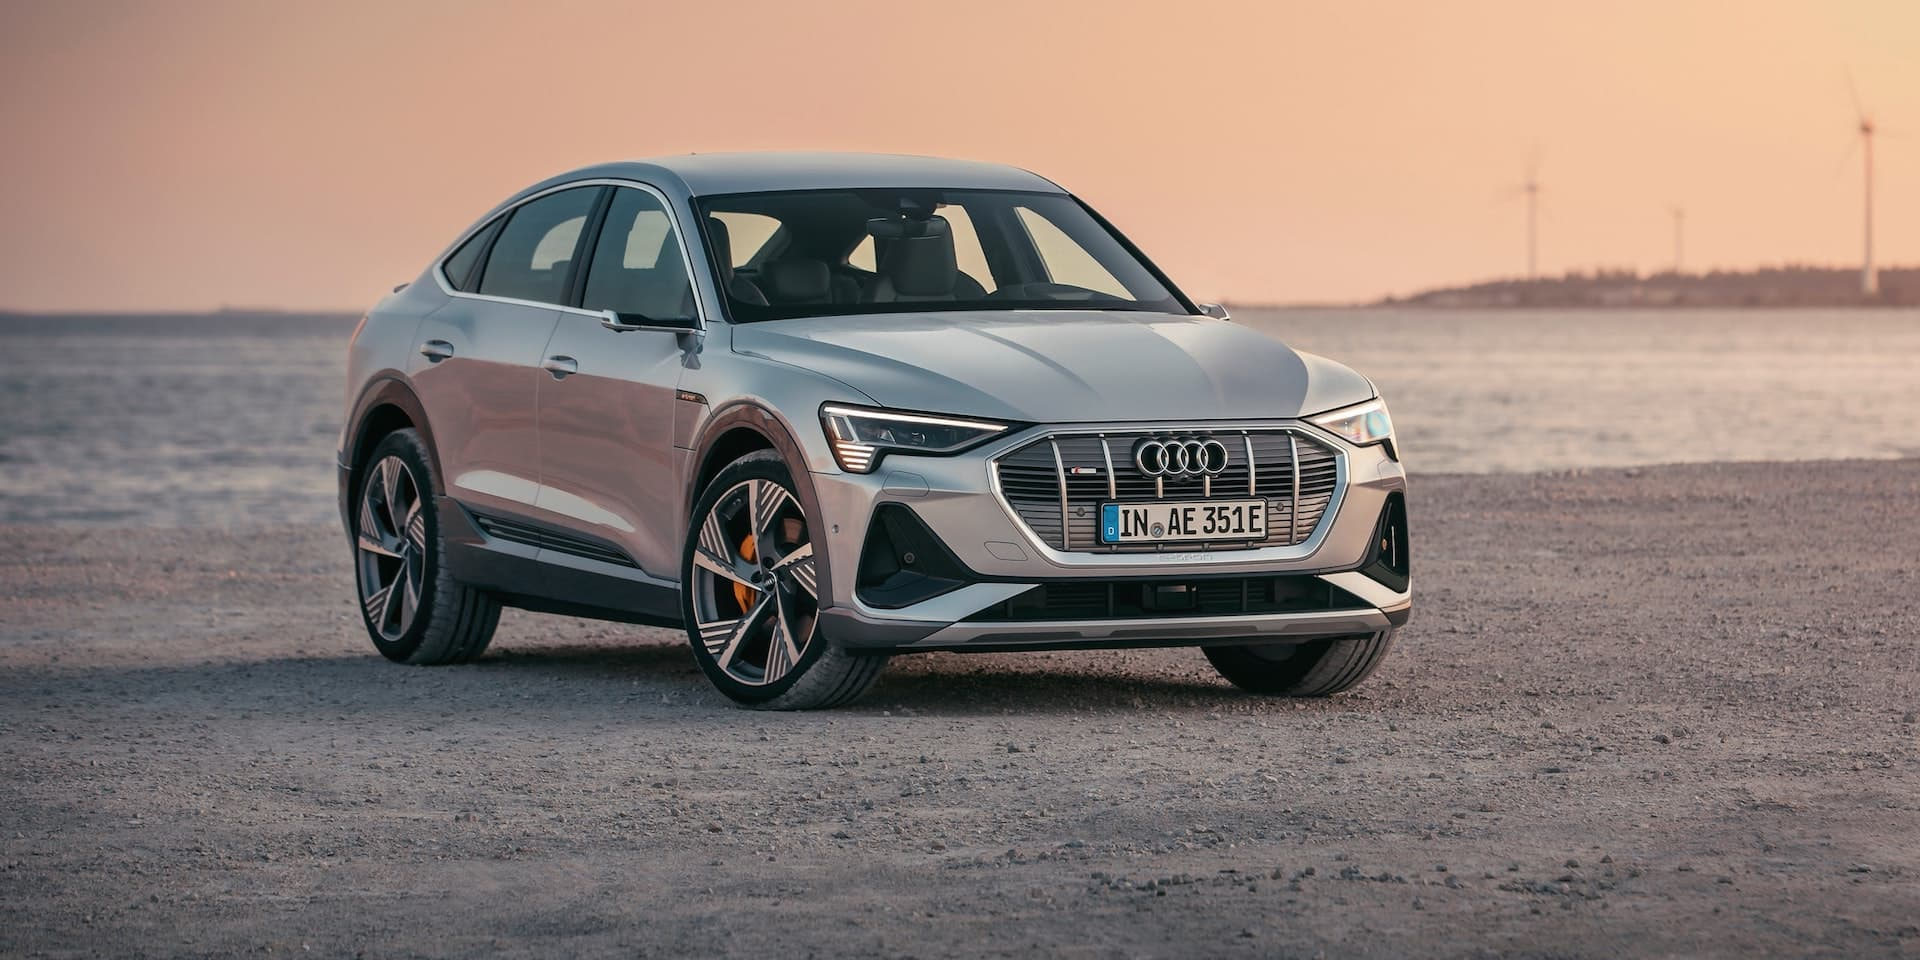 2020 Audi e-tron Sportback | The Car Expert